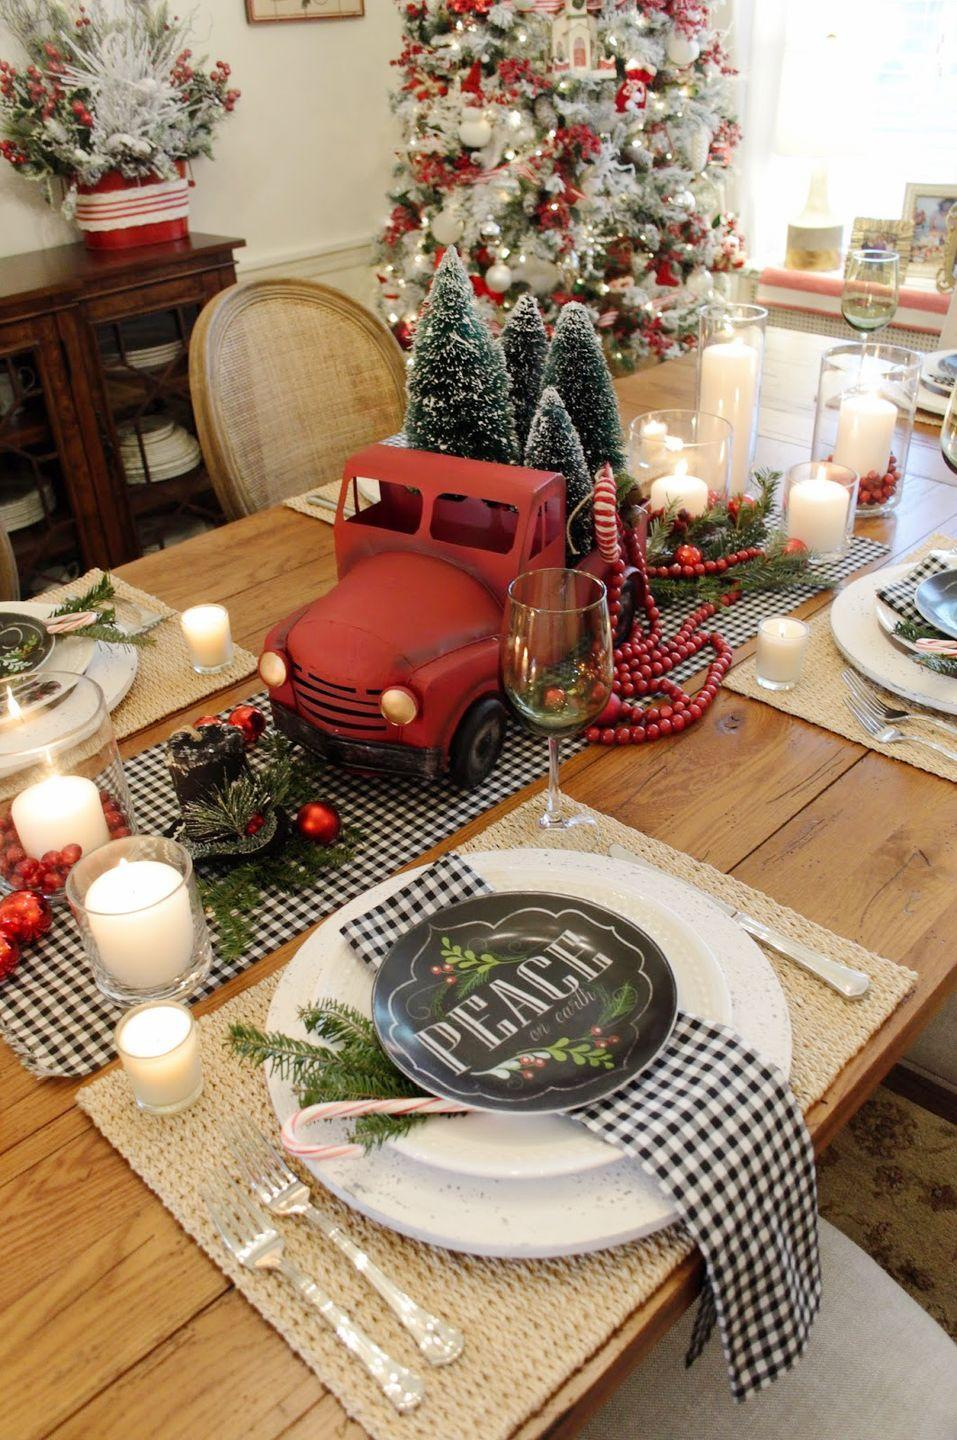 "<p>With its gingham base, array of bottlebrush trees, and rustic red truck, this tablescape proves there's nothing more fun than Christmas in the country. </p><p><strong>Get the tutorial at <a href=""https://rosemary-thyme.blogspot.com/2017/11/a-country-christmas-tablescape.html"" rel=""nofollow noopener"" target=""_blank"" data-ylk=""slk:Rosemary and Thyme"" class=""link rapid-noclick-resp"">Rosemary and Thyme</a>.</strong></p><p><strong><a class=""link rapid-noclick-resp"" href=""https://www.amazon.com/Red-Metal-Truck/dp/B01HN59JJ2/?tag=syn-yahoo-20&ascsubtag=%5Bartid%7C10050.g.644%5Bsrc%7Cyahoo-us"" rel=""nofollow noopener"" target=""_blank"" data-ylk=""slk:SHOP RED TRUCKS"">SHOP RED TRUCKS</a><br></strong></p>"